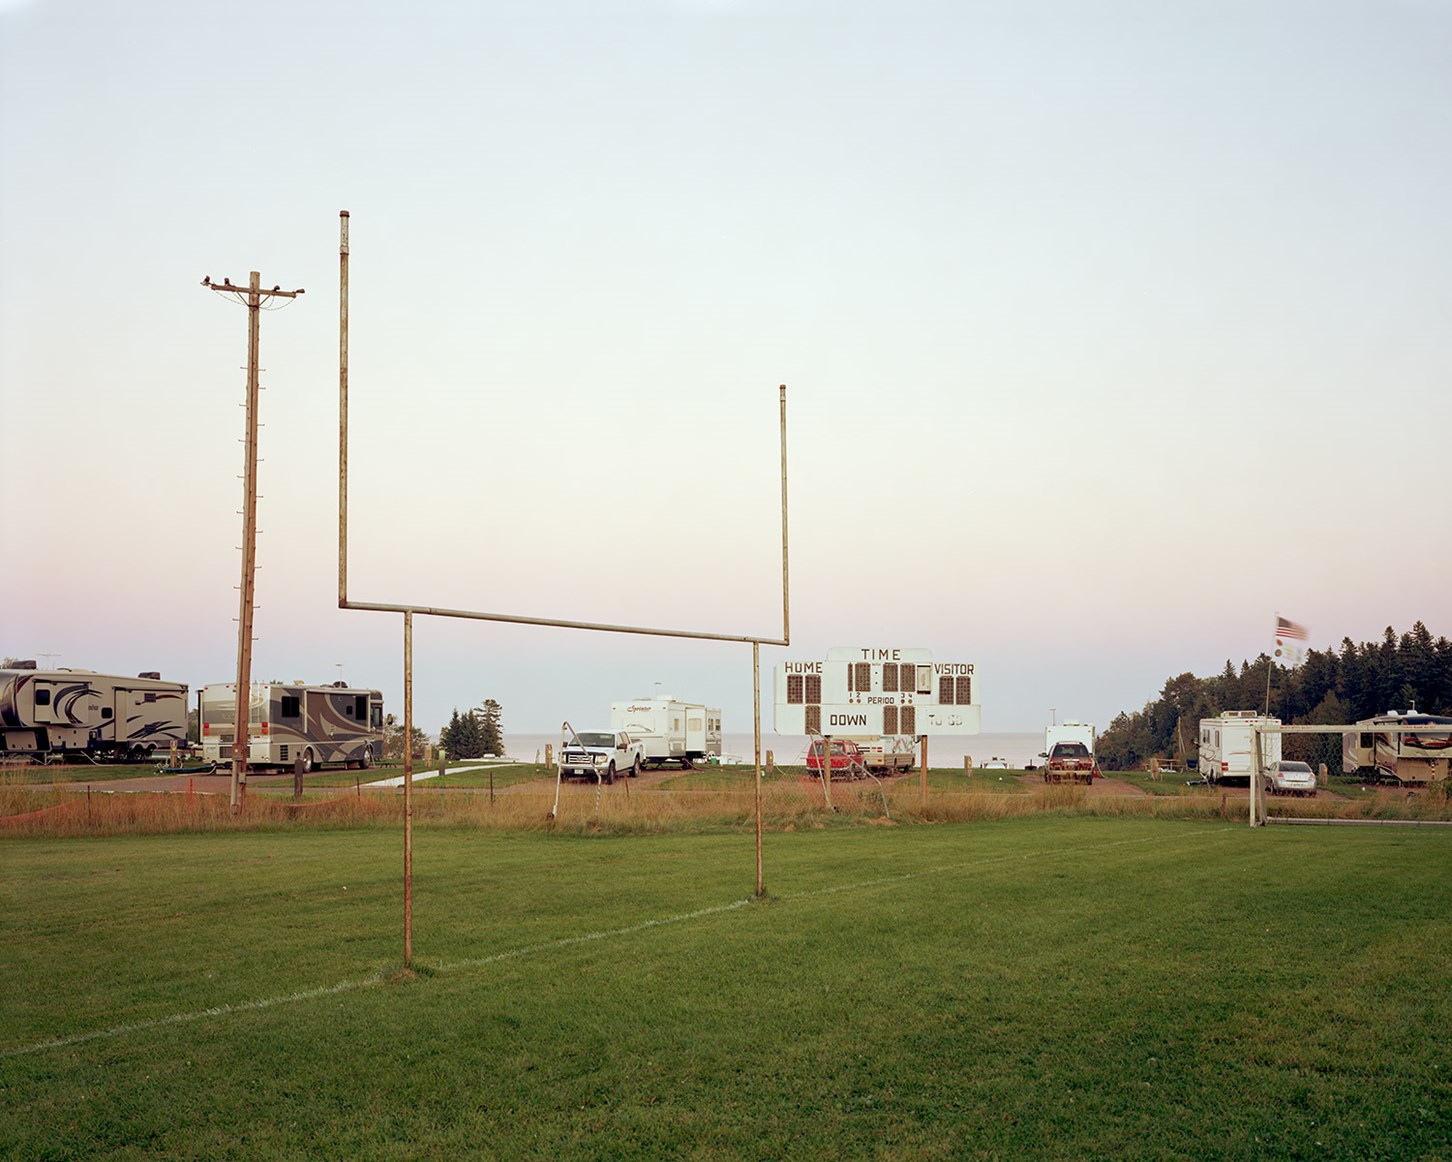 Football Field, Two Harbors, Minnesota, September 2014